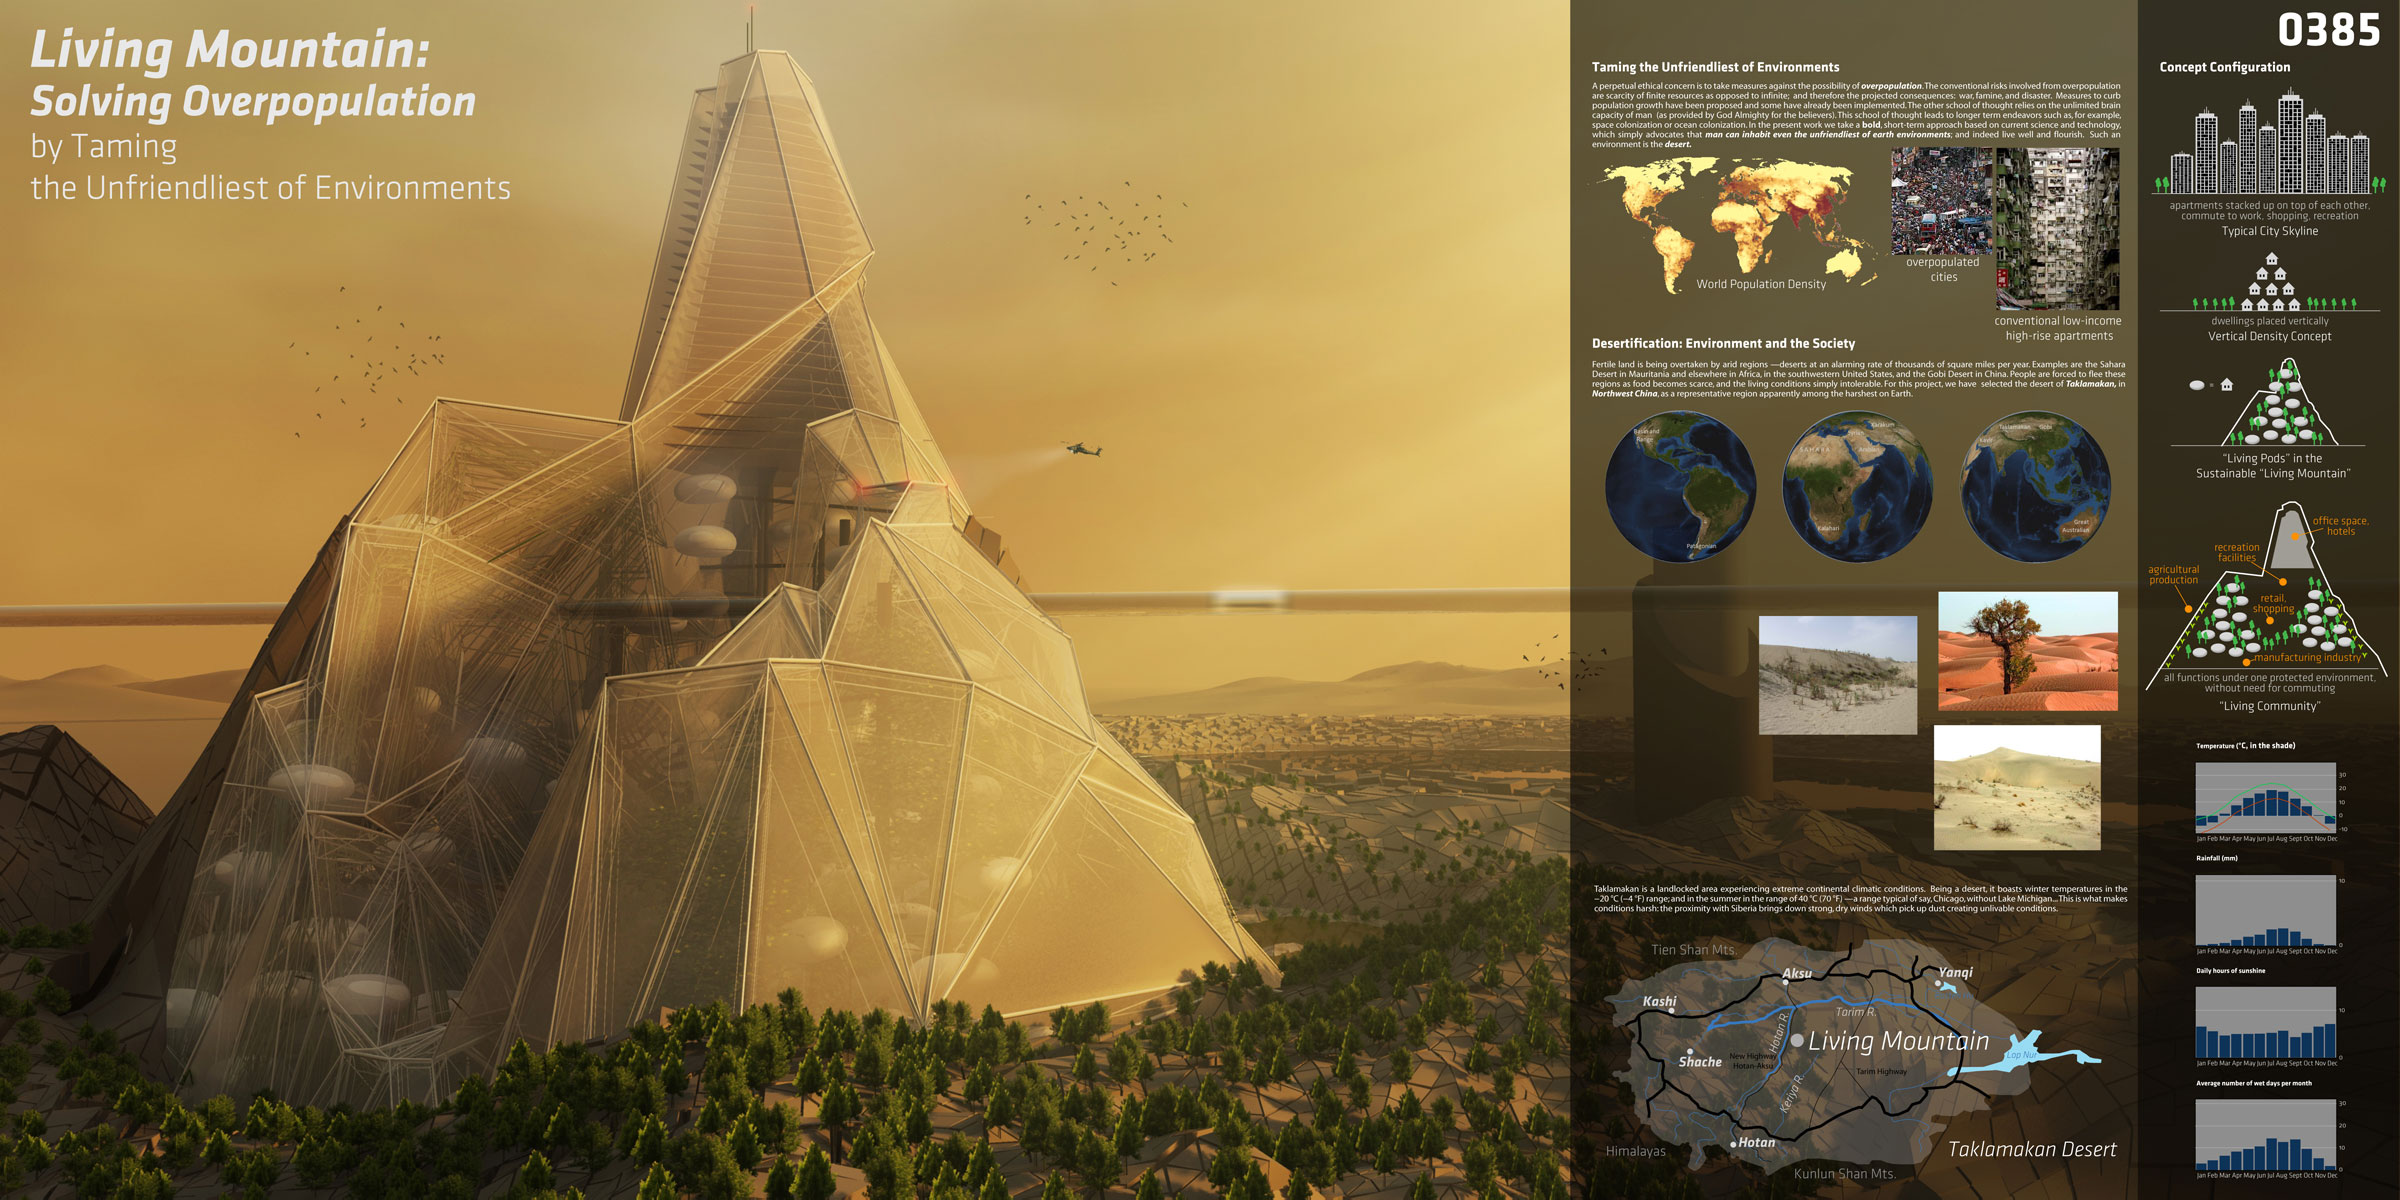 Living In The Mountains living mountain: solving overpopulation- evolo | architecture magazine